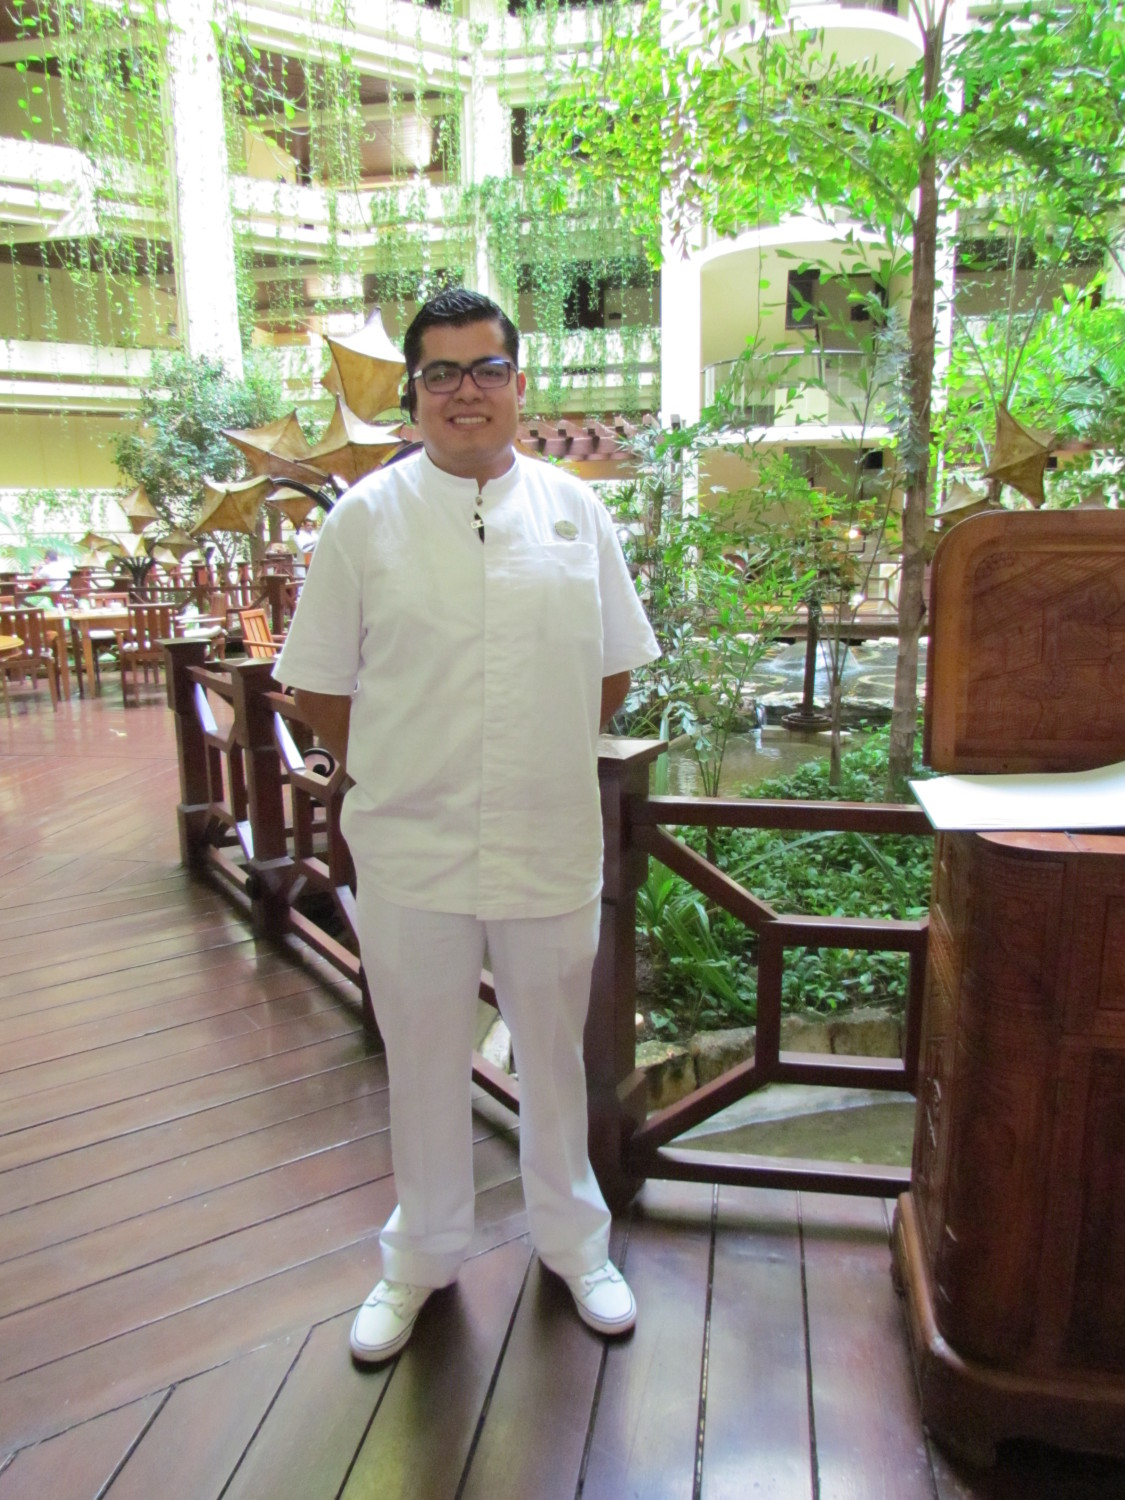 Erik-butler-extraordinare-offers-truly-Royal-Service-at-the-Paradisus-Cancun-Photo-Debra-Smith3-e1440796674145